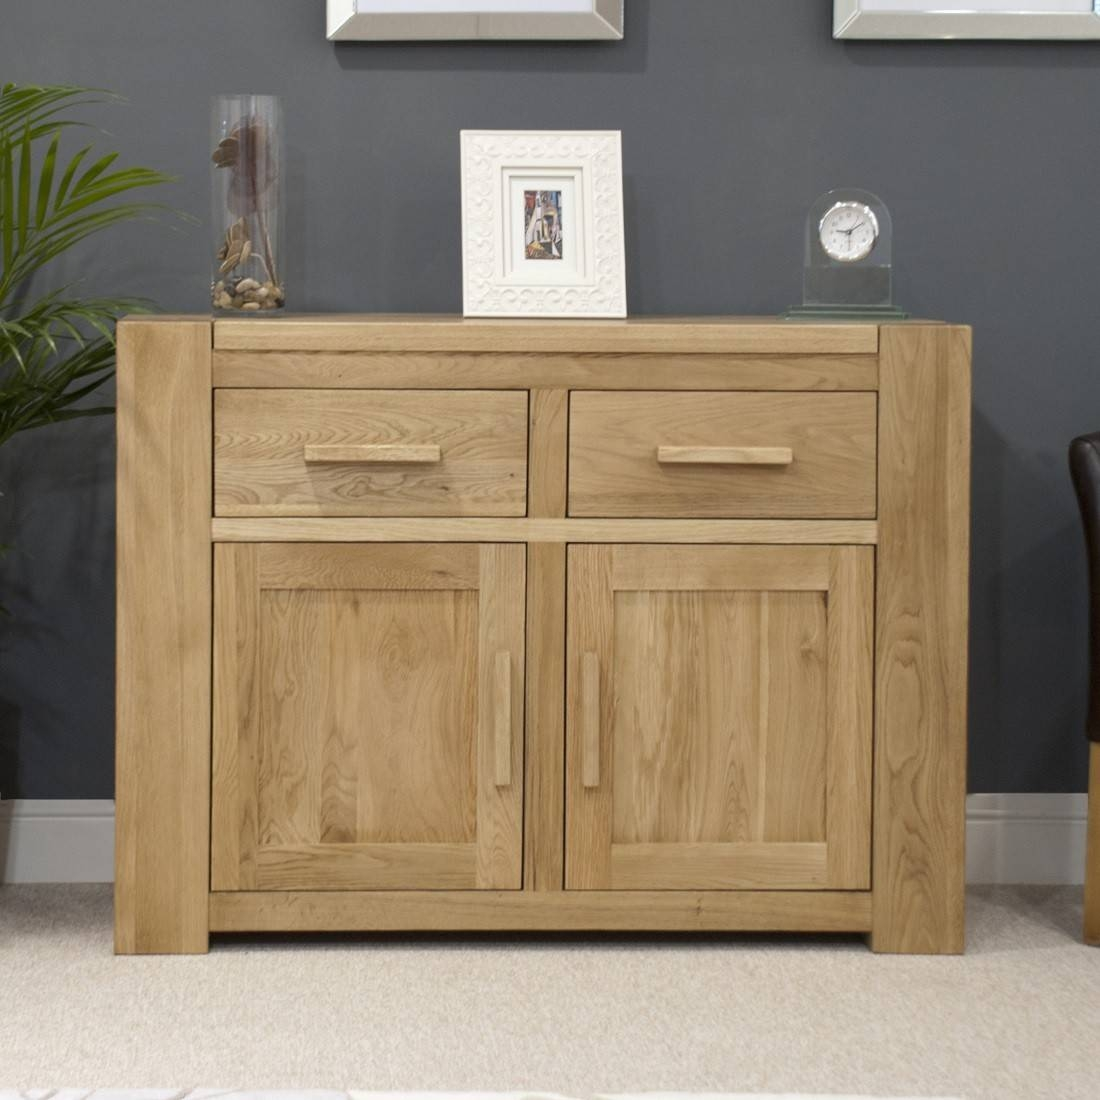 Trend Solid Oak Small 2 Door Sideboard | Oak Furniture Uk in 2 Door Sideboards (Image 12 of 15)